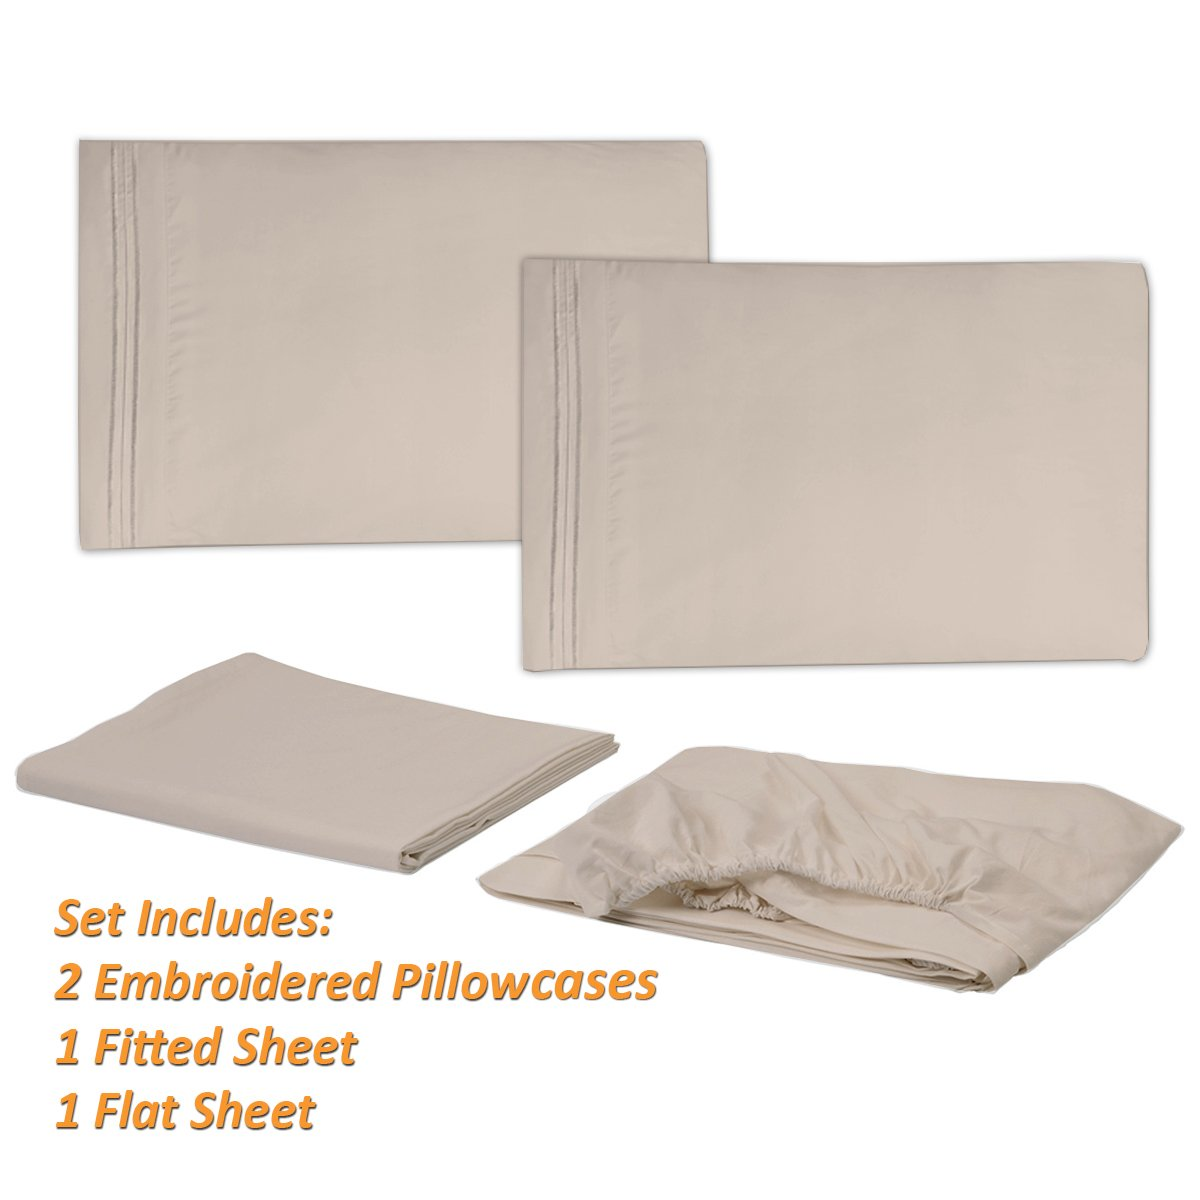 1500 Supreme Collection Extra Soft Queen Sheets Set, Beige - Luxury Bed Sheets Set With Deep Pocket Wrinkle Free Hypoallergenic Bedding, Over 40 Colors, Queen Size, Beige by Sweet Home Collection (Image #2)